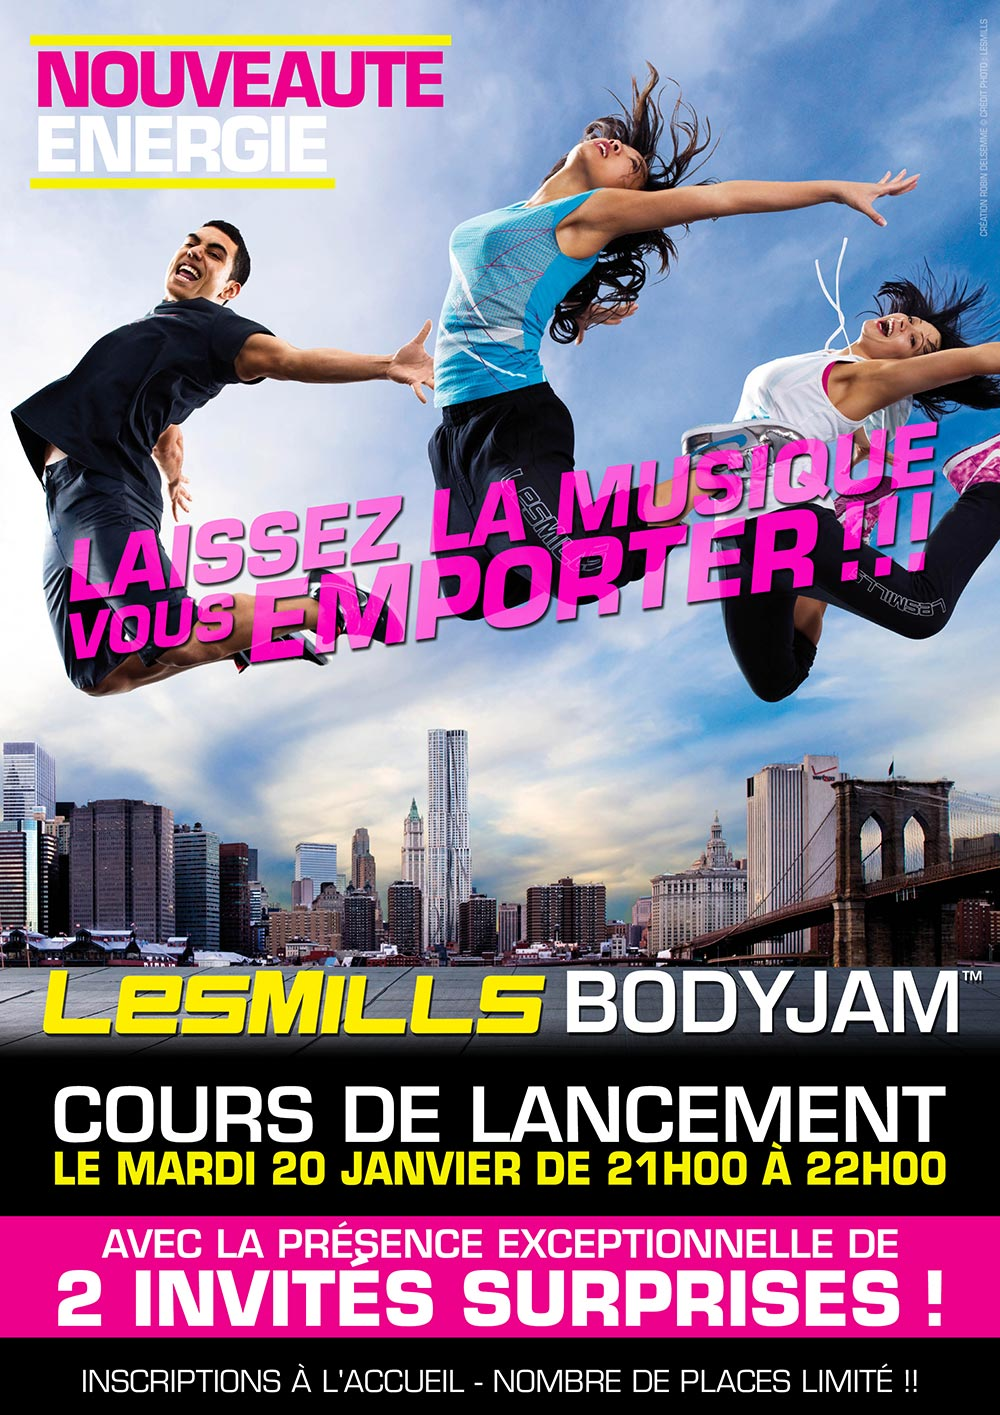 Club Energie Fitness Orleans Affiche Lancement Bodyjam by LesMills